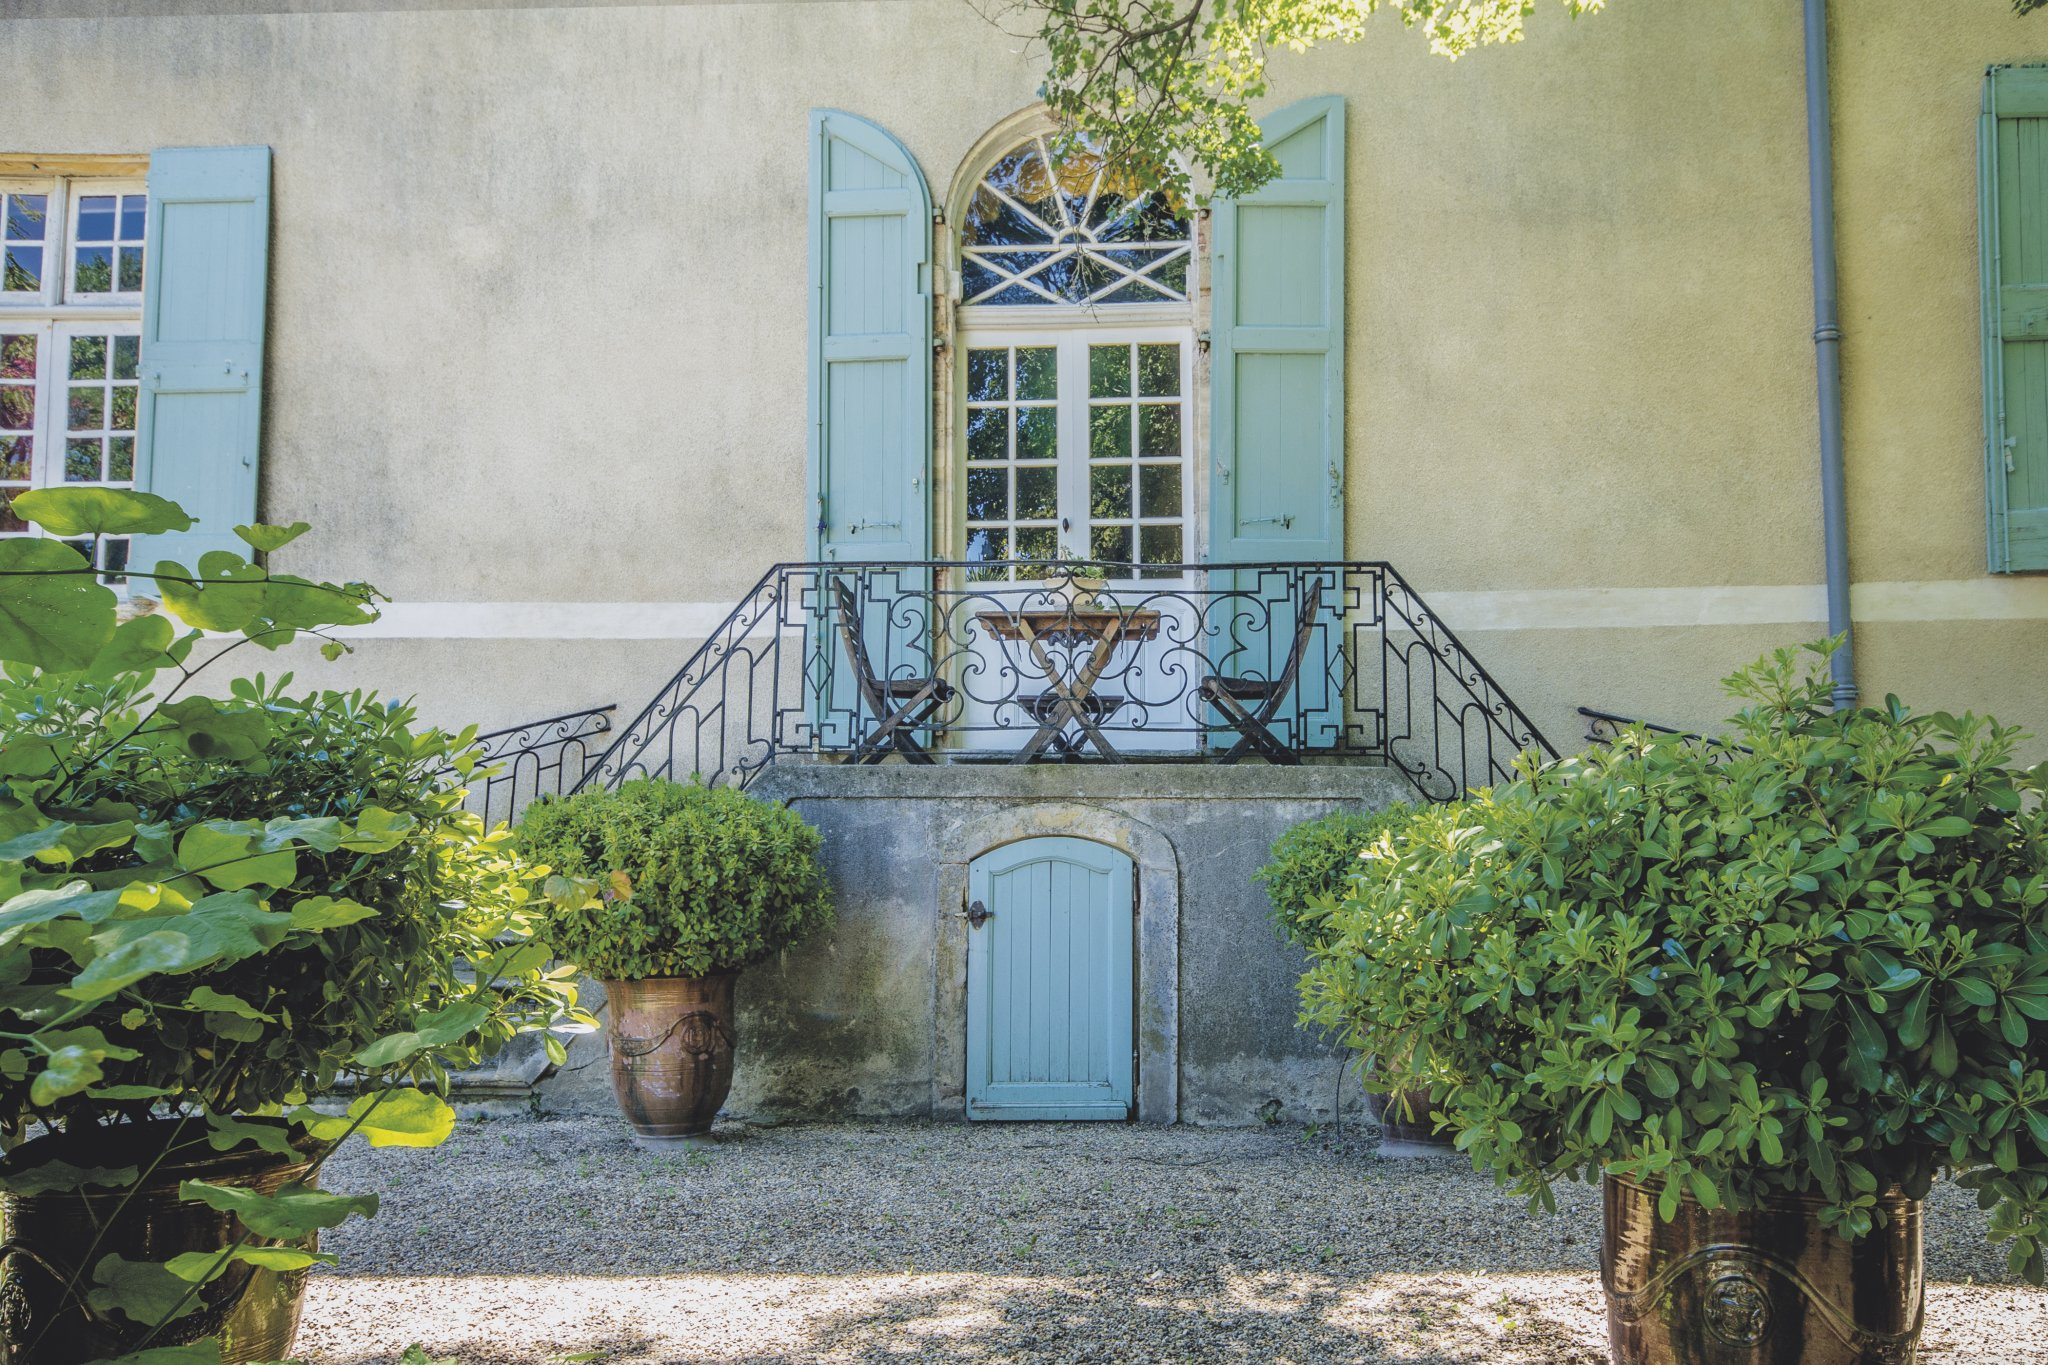 Fabulous listed 13-18th C chateau with chapel and pool